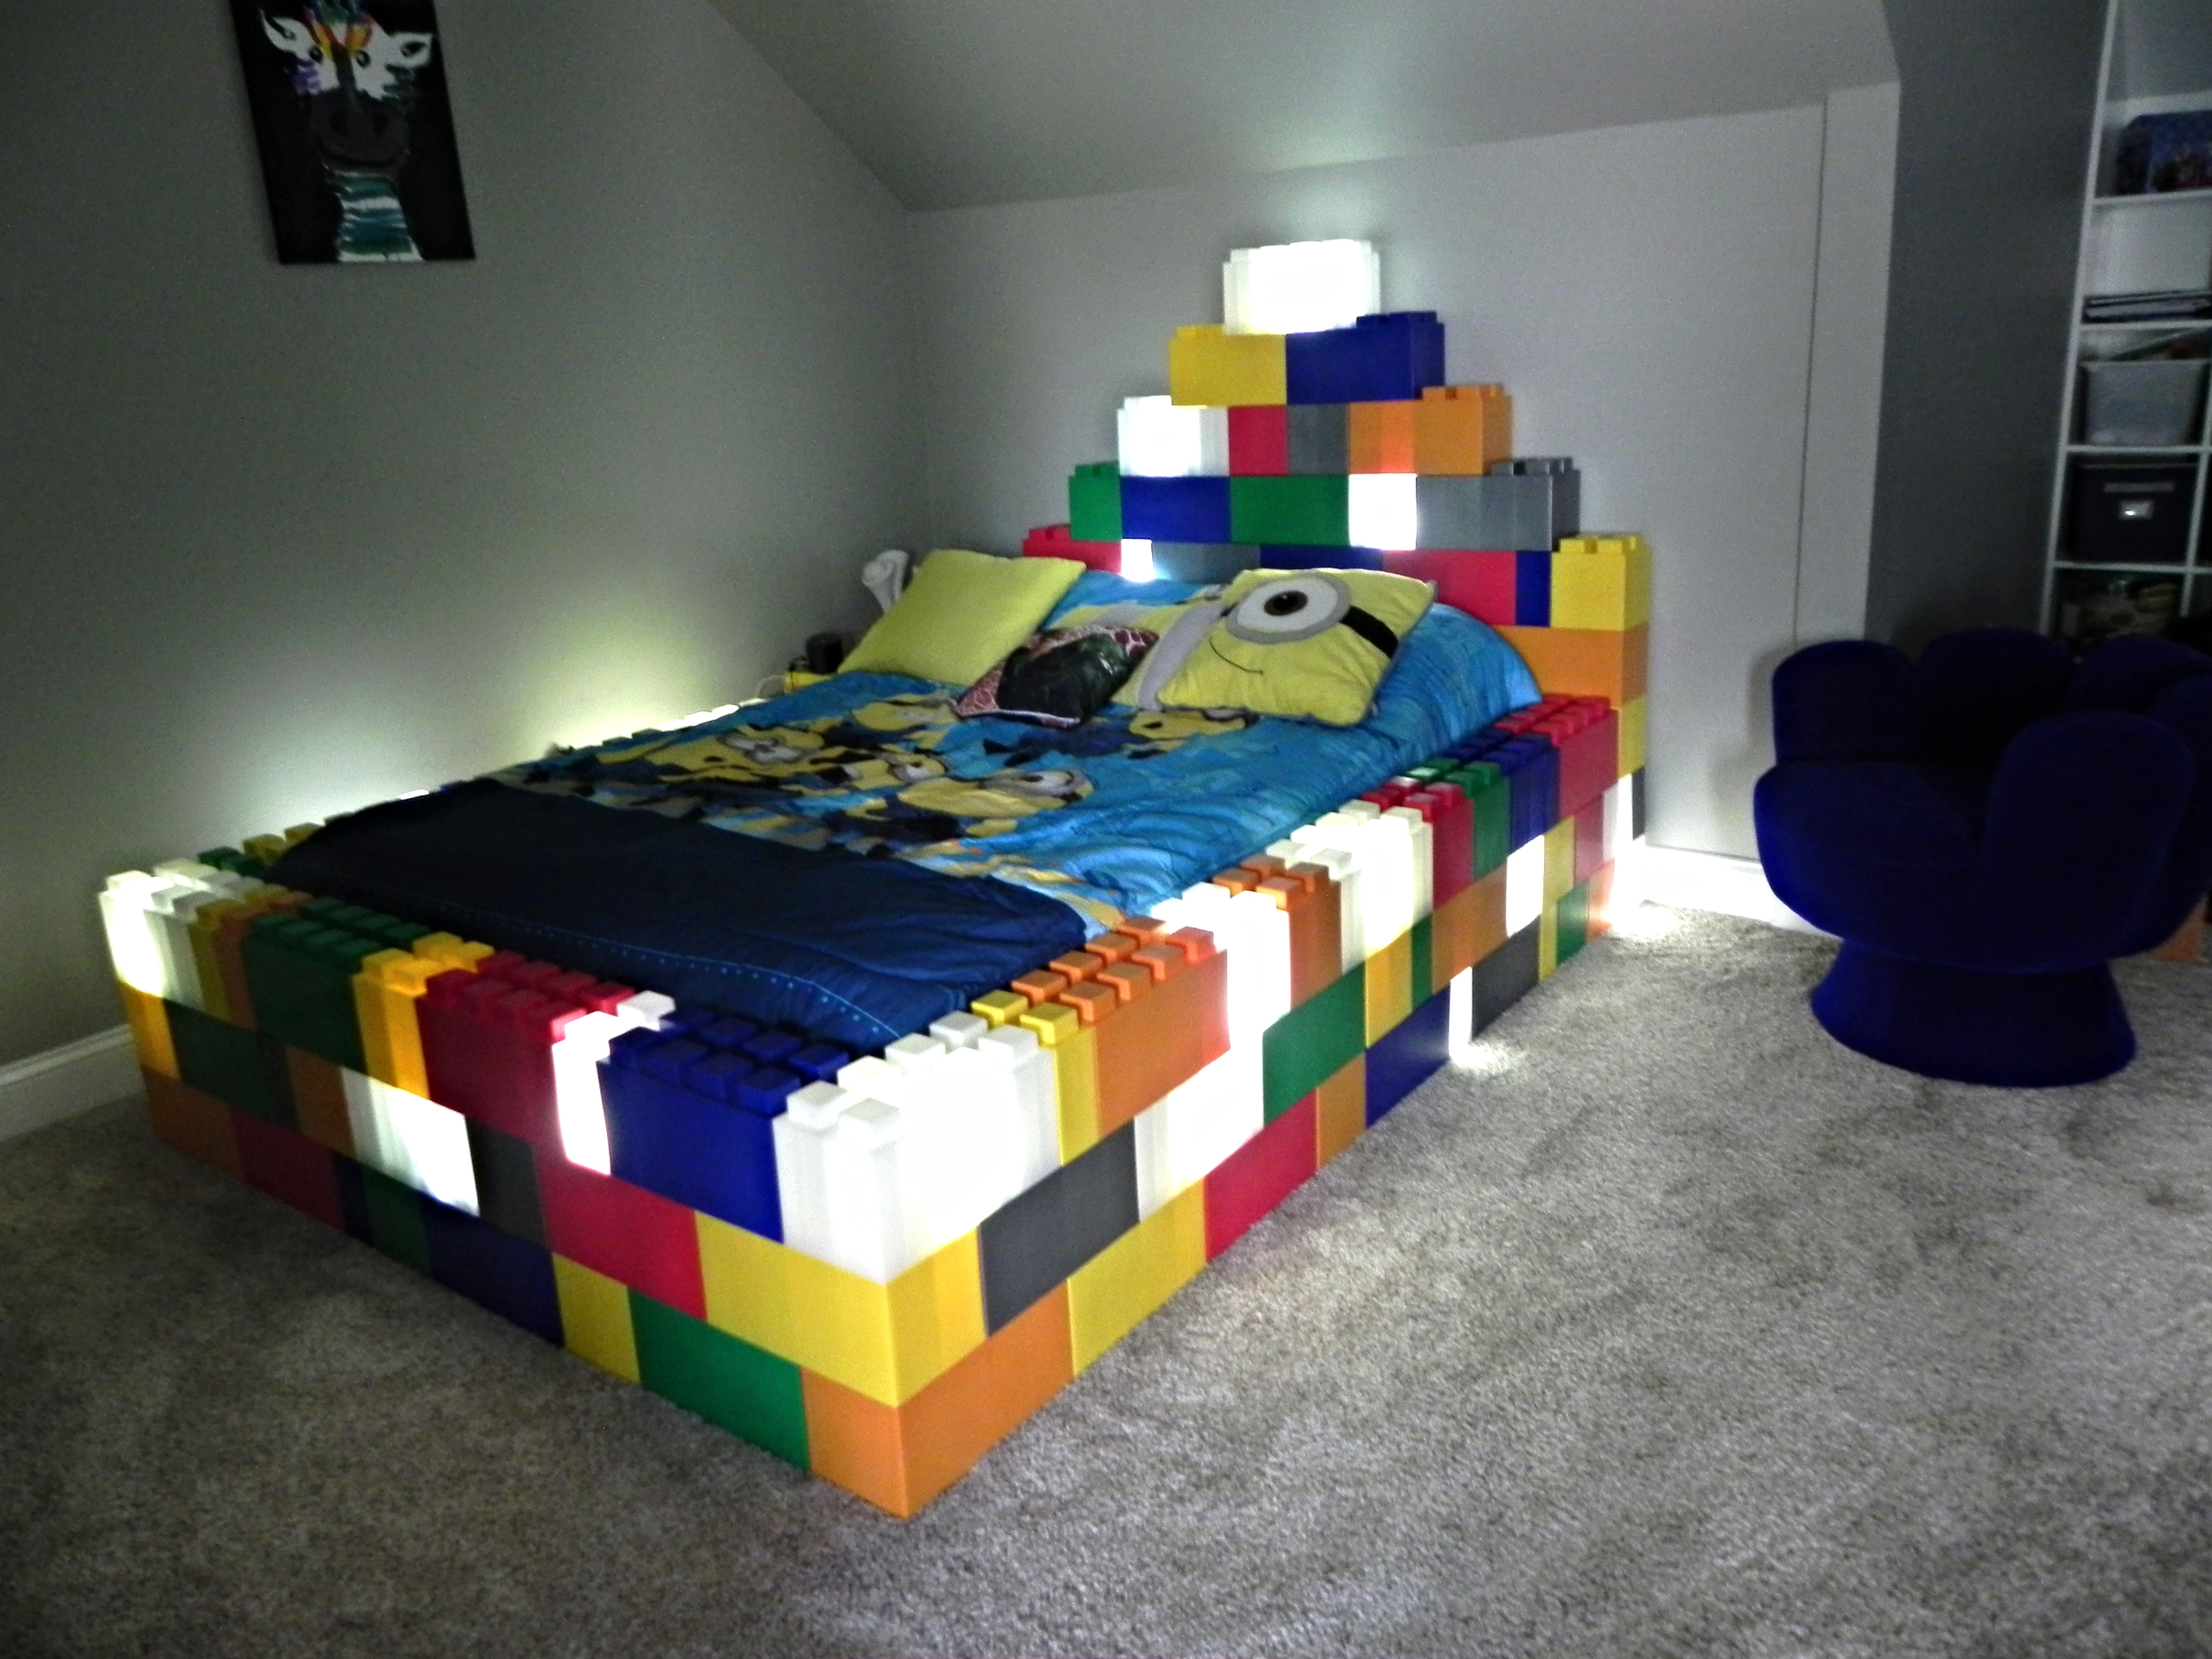 Illuminated Bed Frame